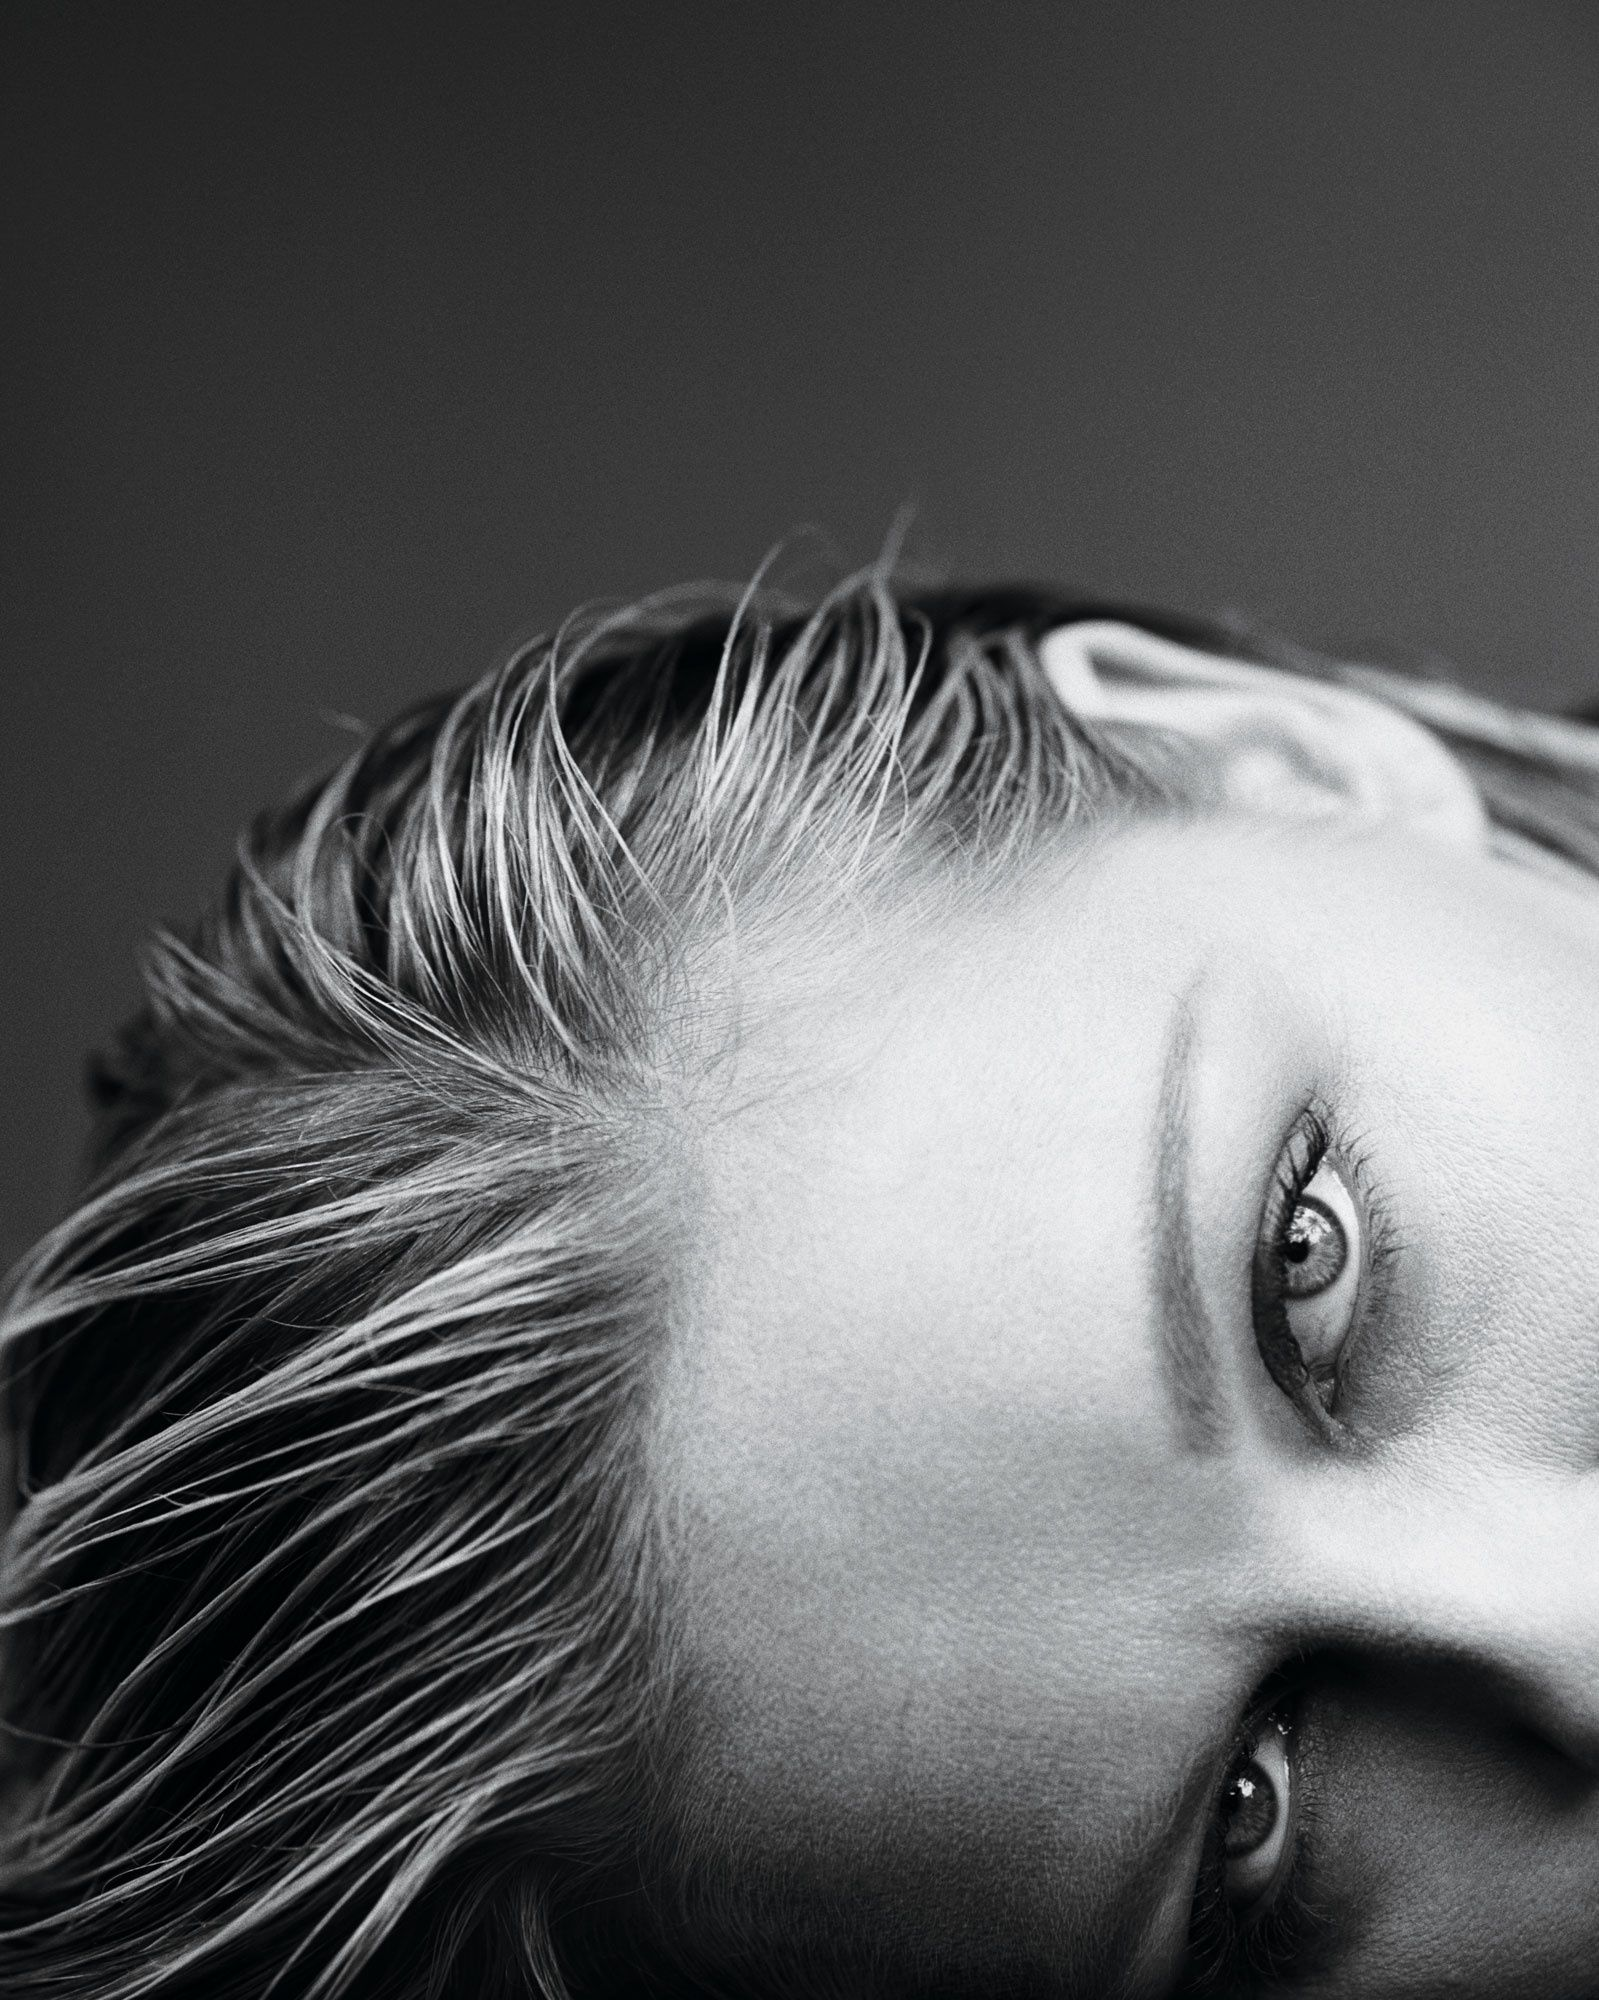 Black and white portrait of Kirsten Dunst's eyes.